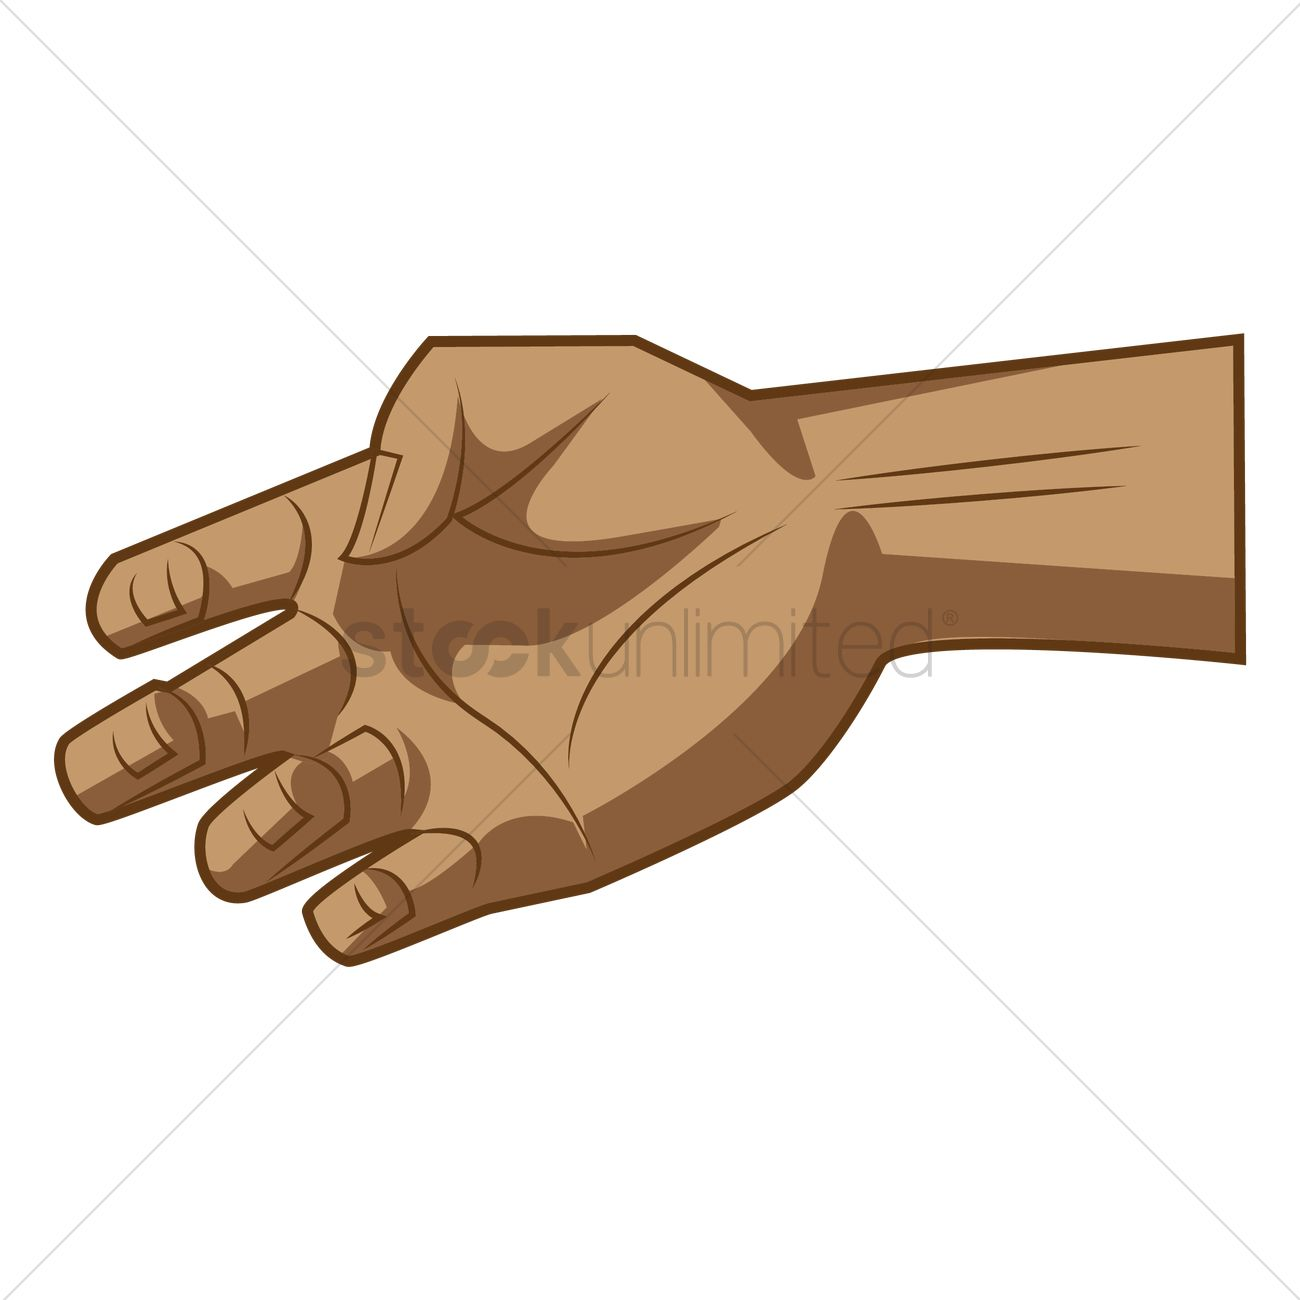 grab hand vector image 1459056 stockunlimited rh stockunlimited com Shaking Hands Holding Hands